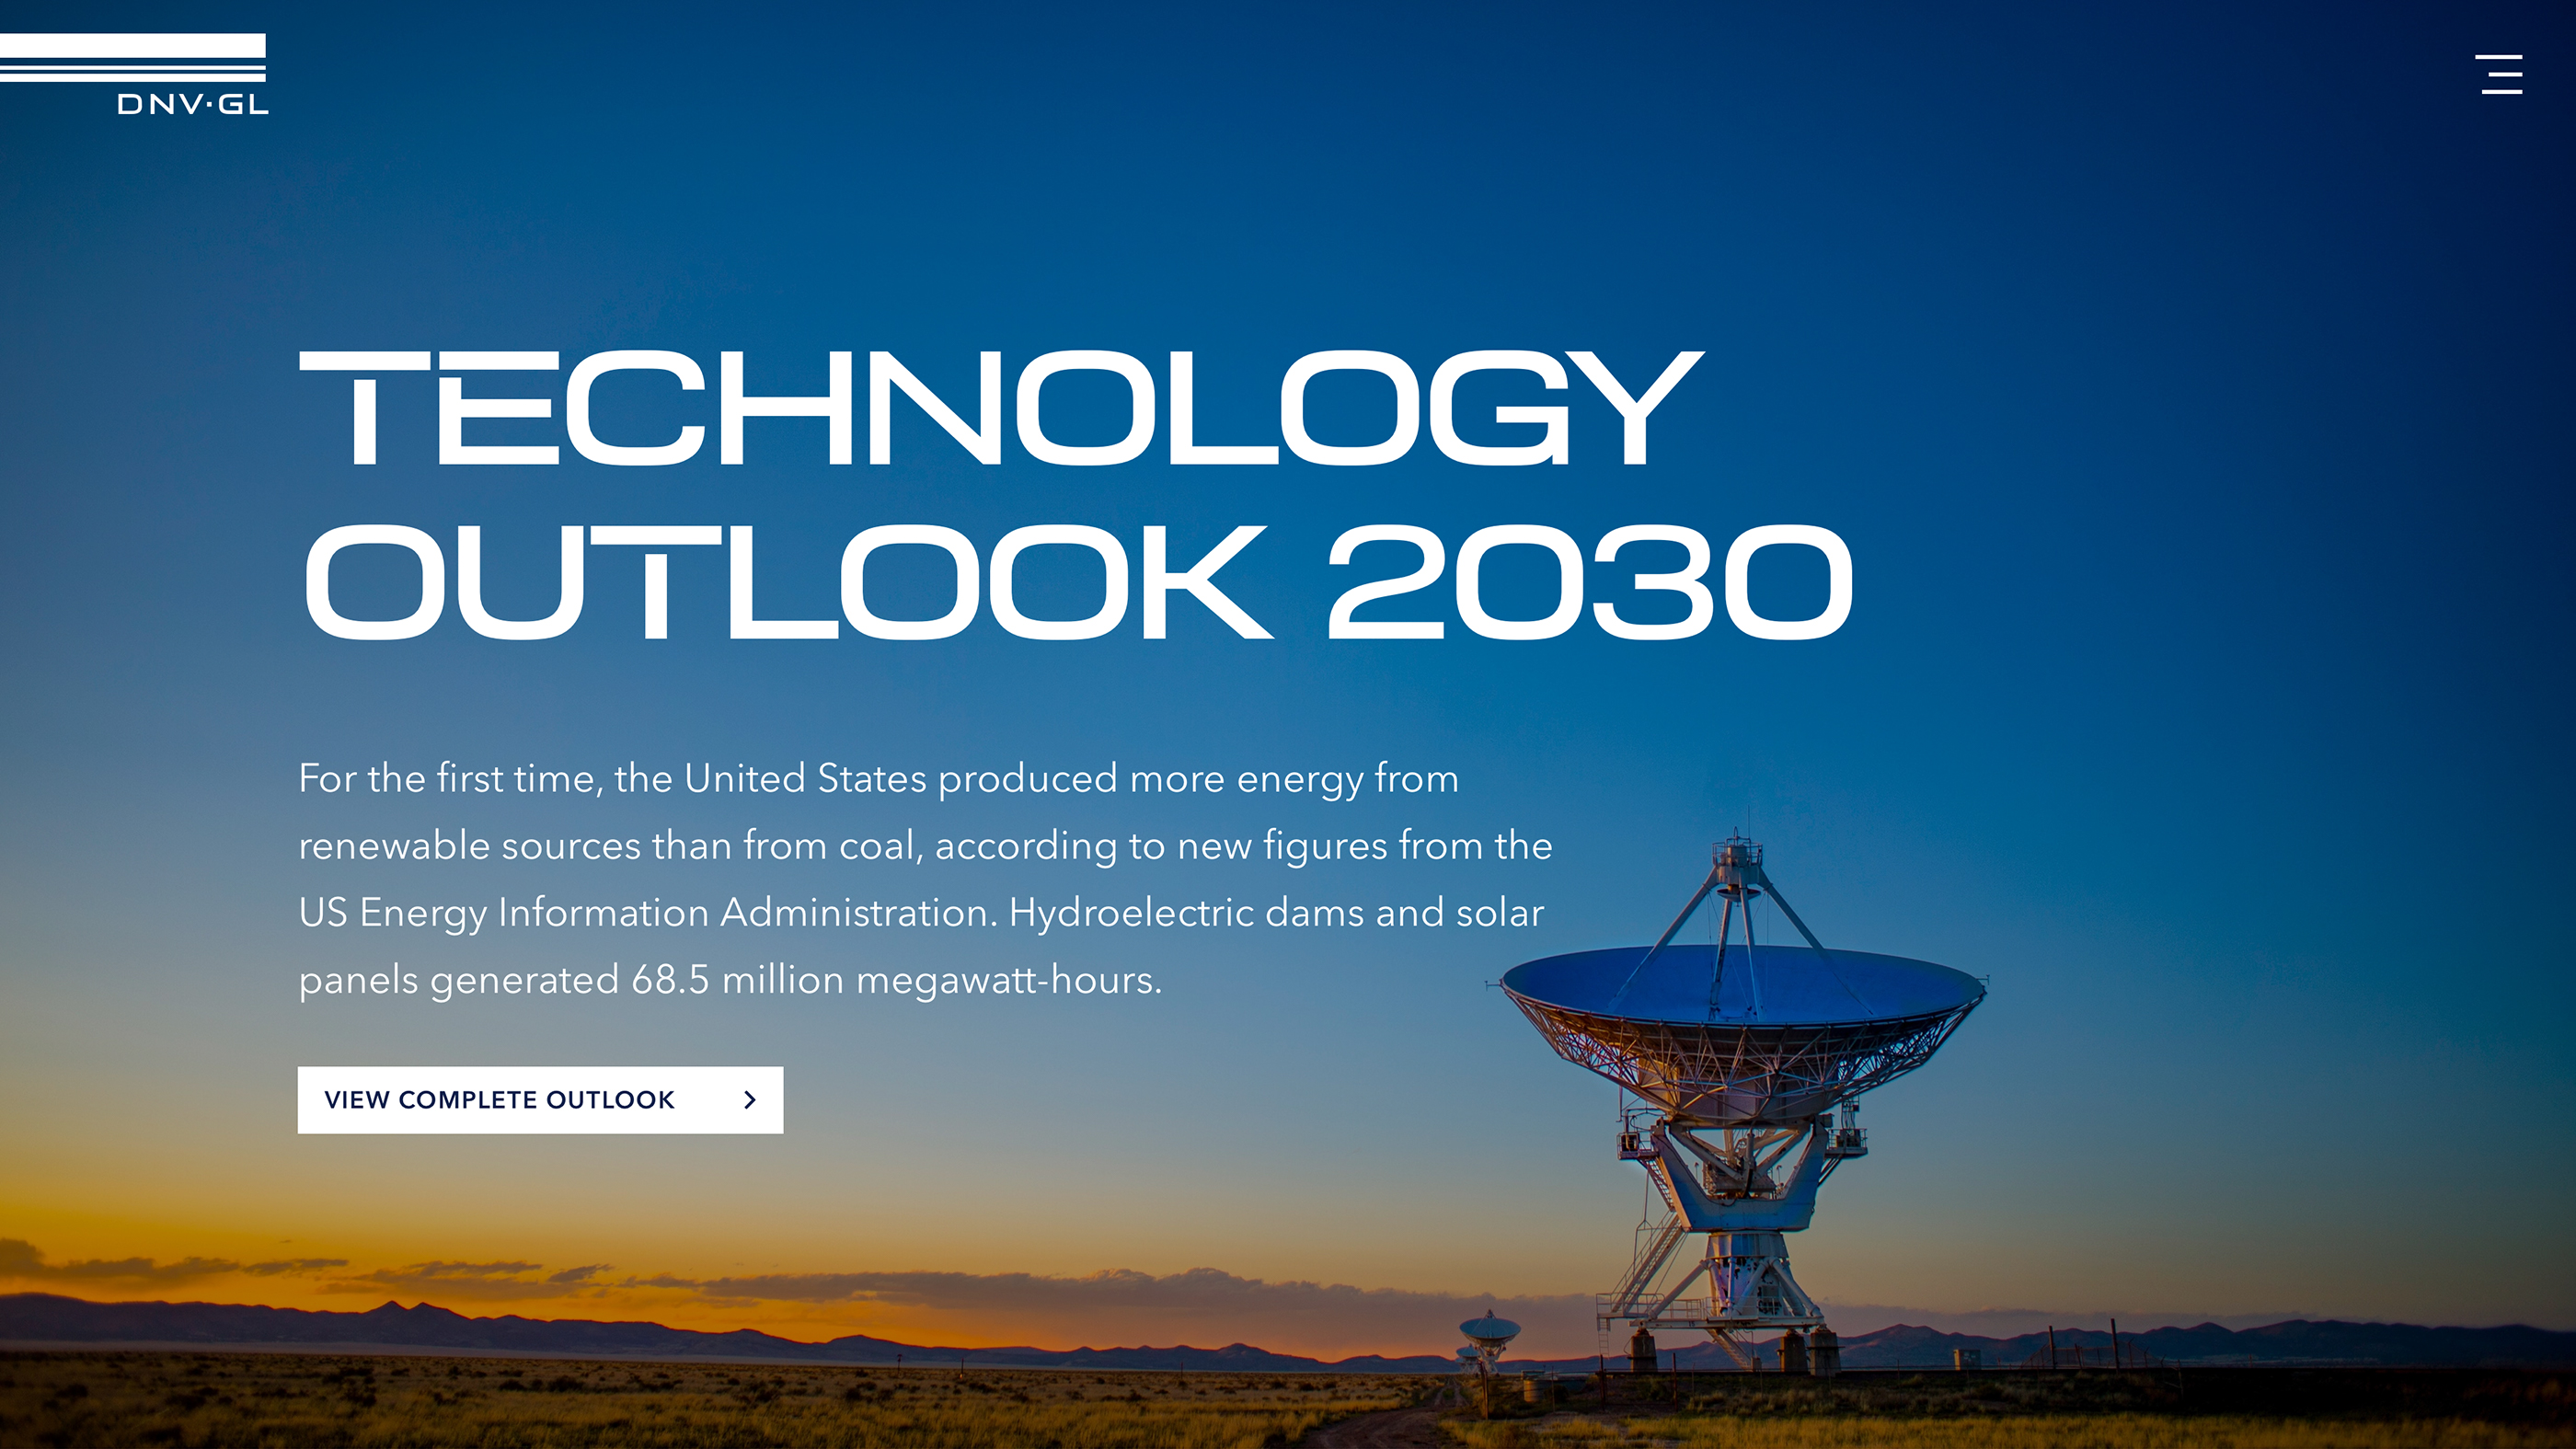 dnv-gl_technology-outlook_intro